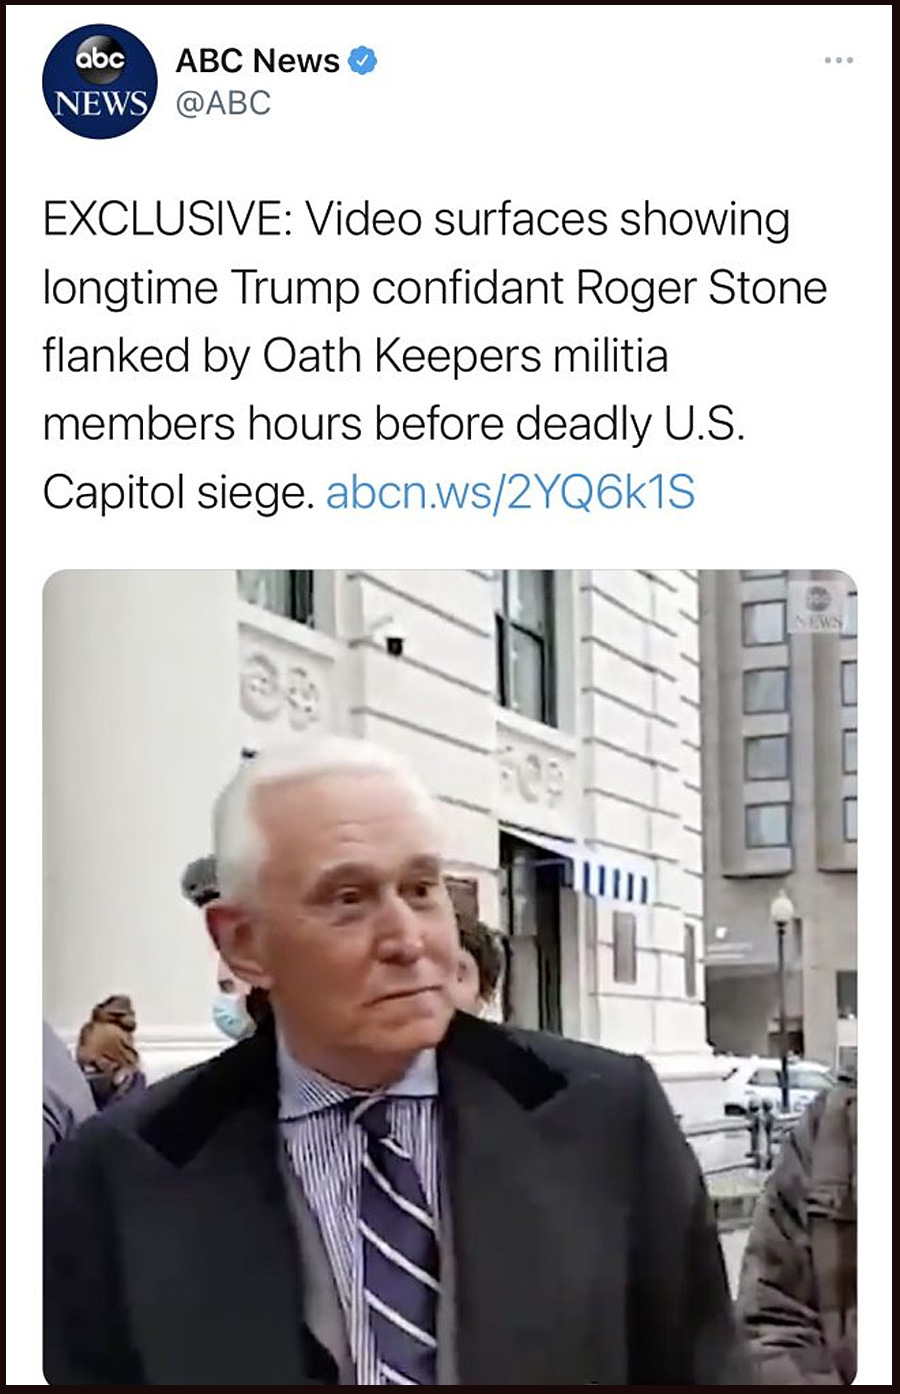 Video surfaces showing Trump ally Roger Stone flanked by Oath Keepers on morning of Jan. 6